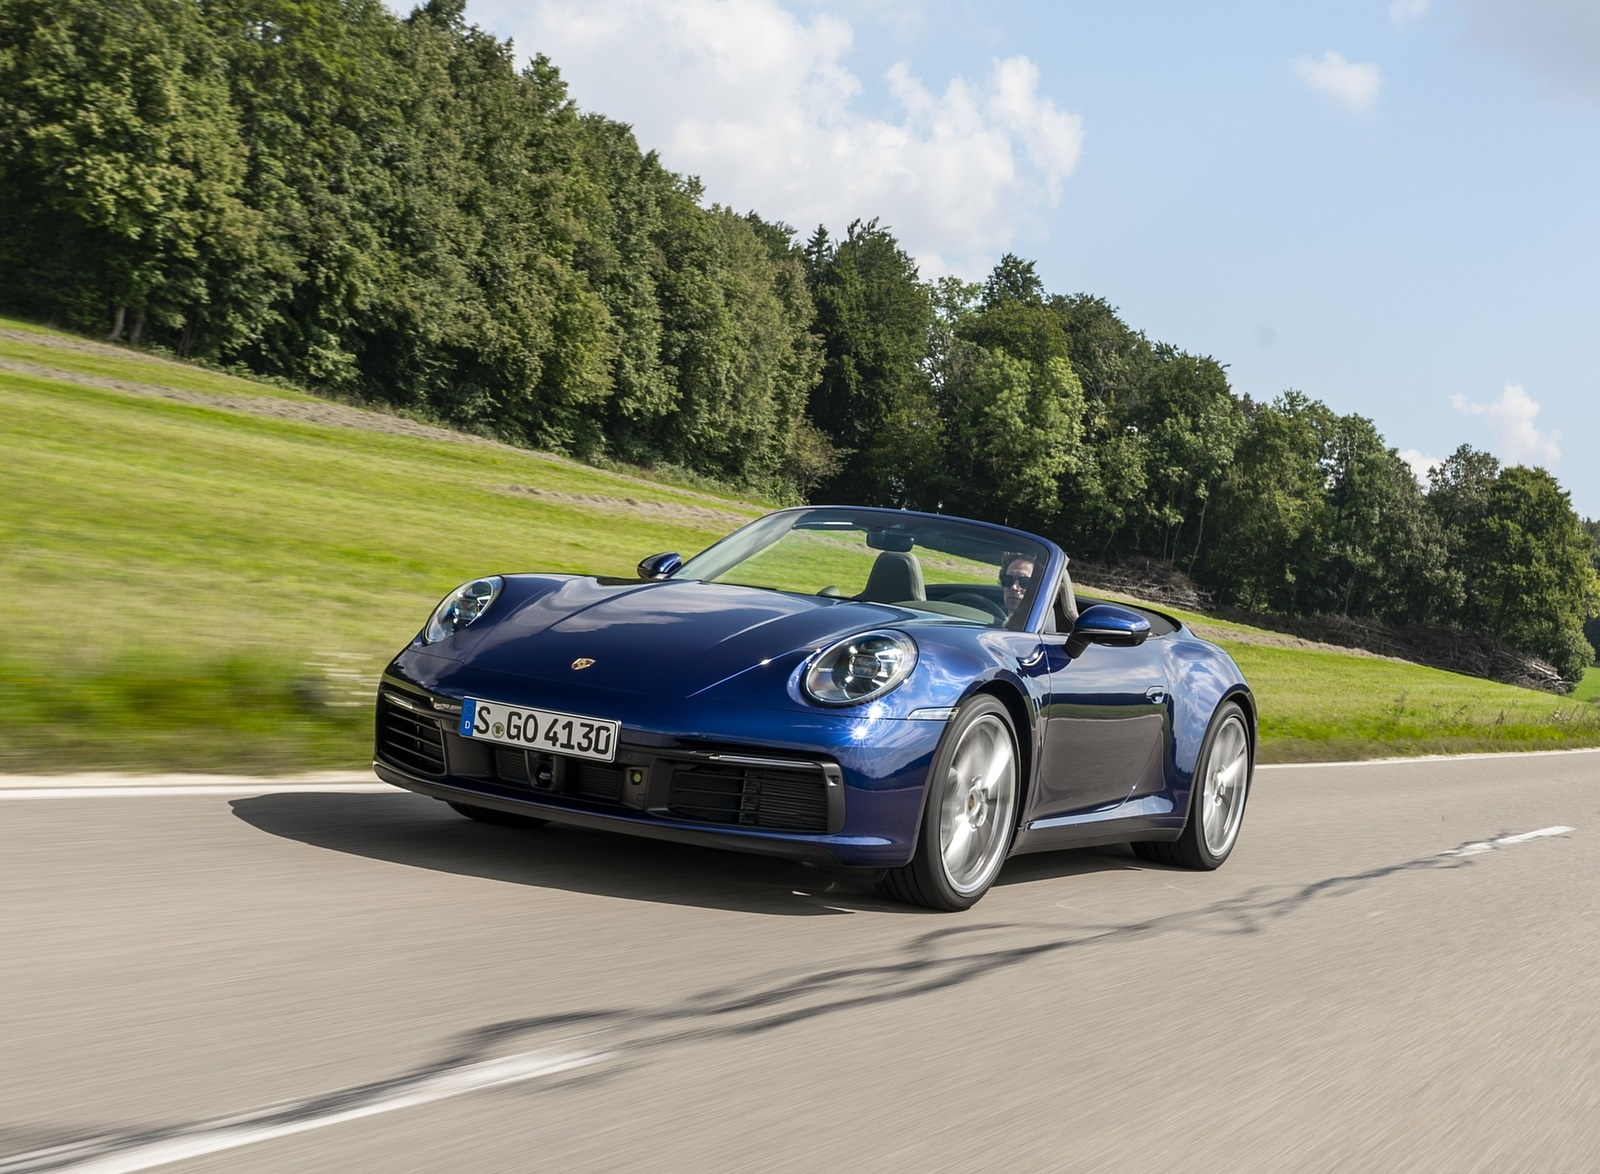 2020 Porsche 911 Carrera Cabriolet (Color: Gentian Blue Metallic) Front Three-Quarter Wallpapers (10)